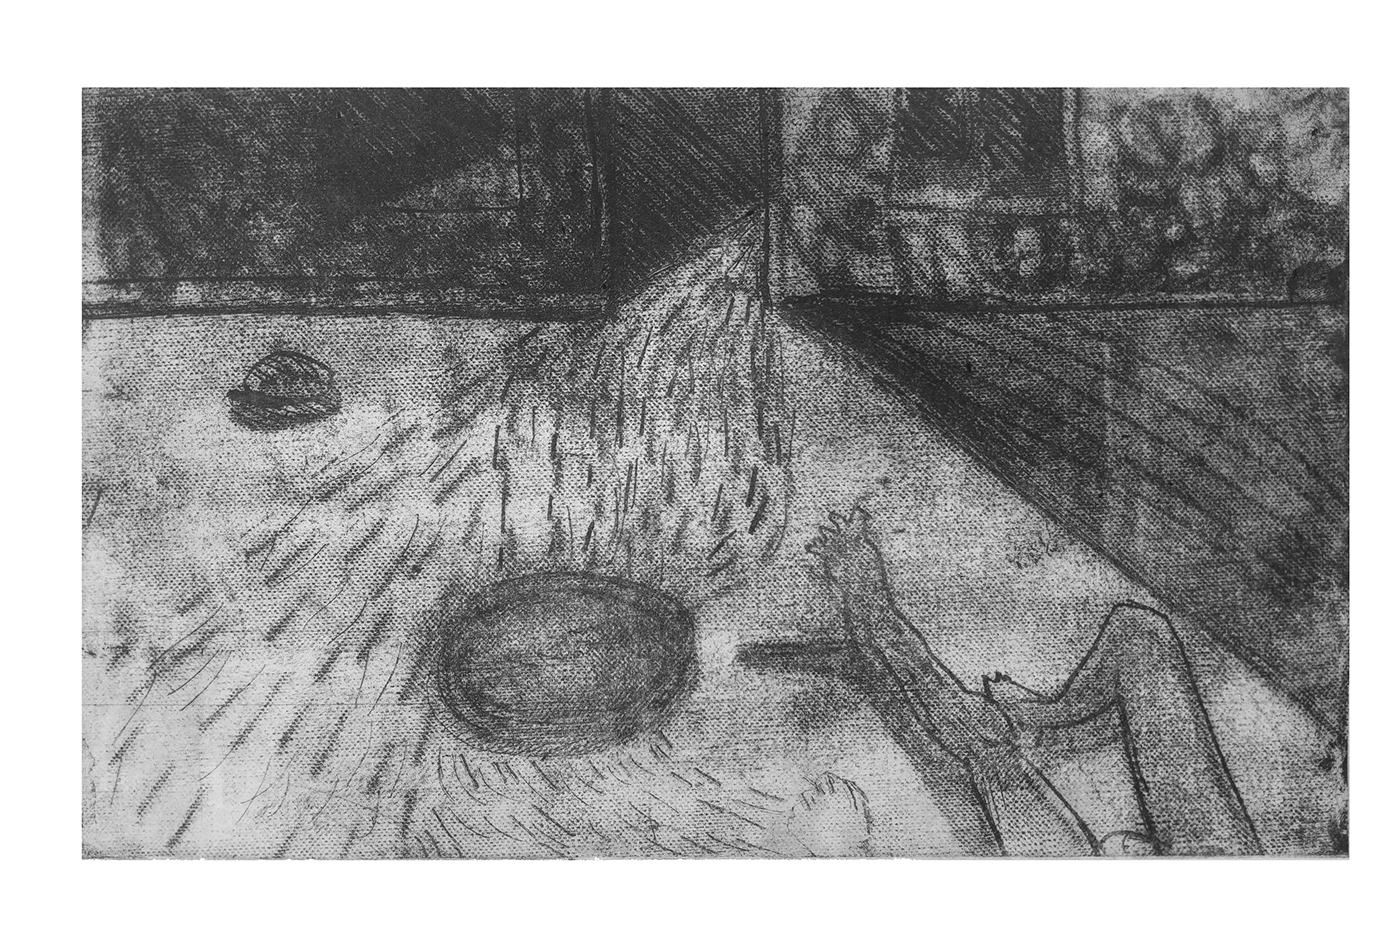 print printmaking Drawing  grayscale fine art body close up traditional Love